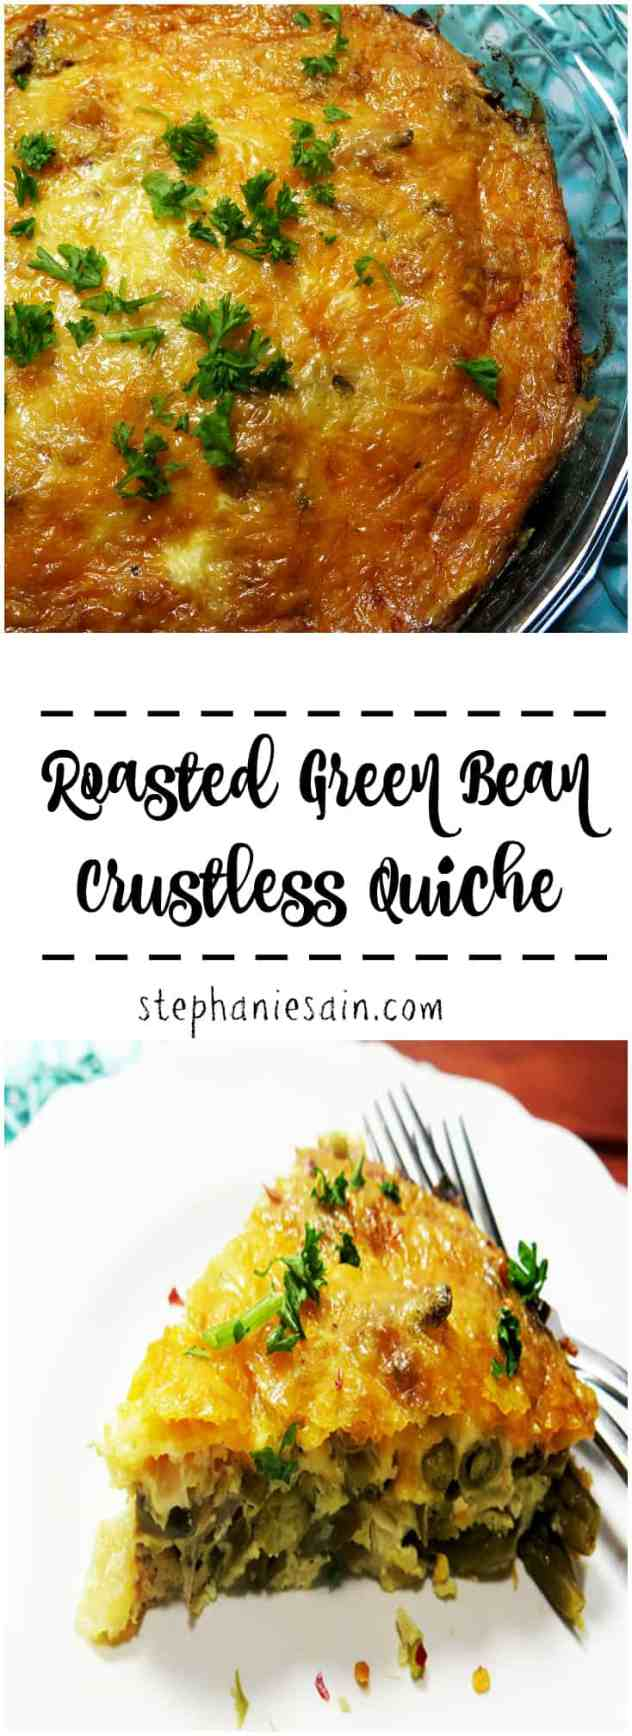 Roasted Green Bean Crustless Quiche is a tasty, healthy quiche that is perfect for brunch or dinner. Vegetarian and Gluten Free.